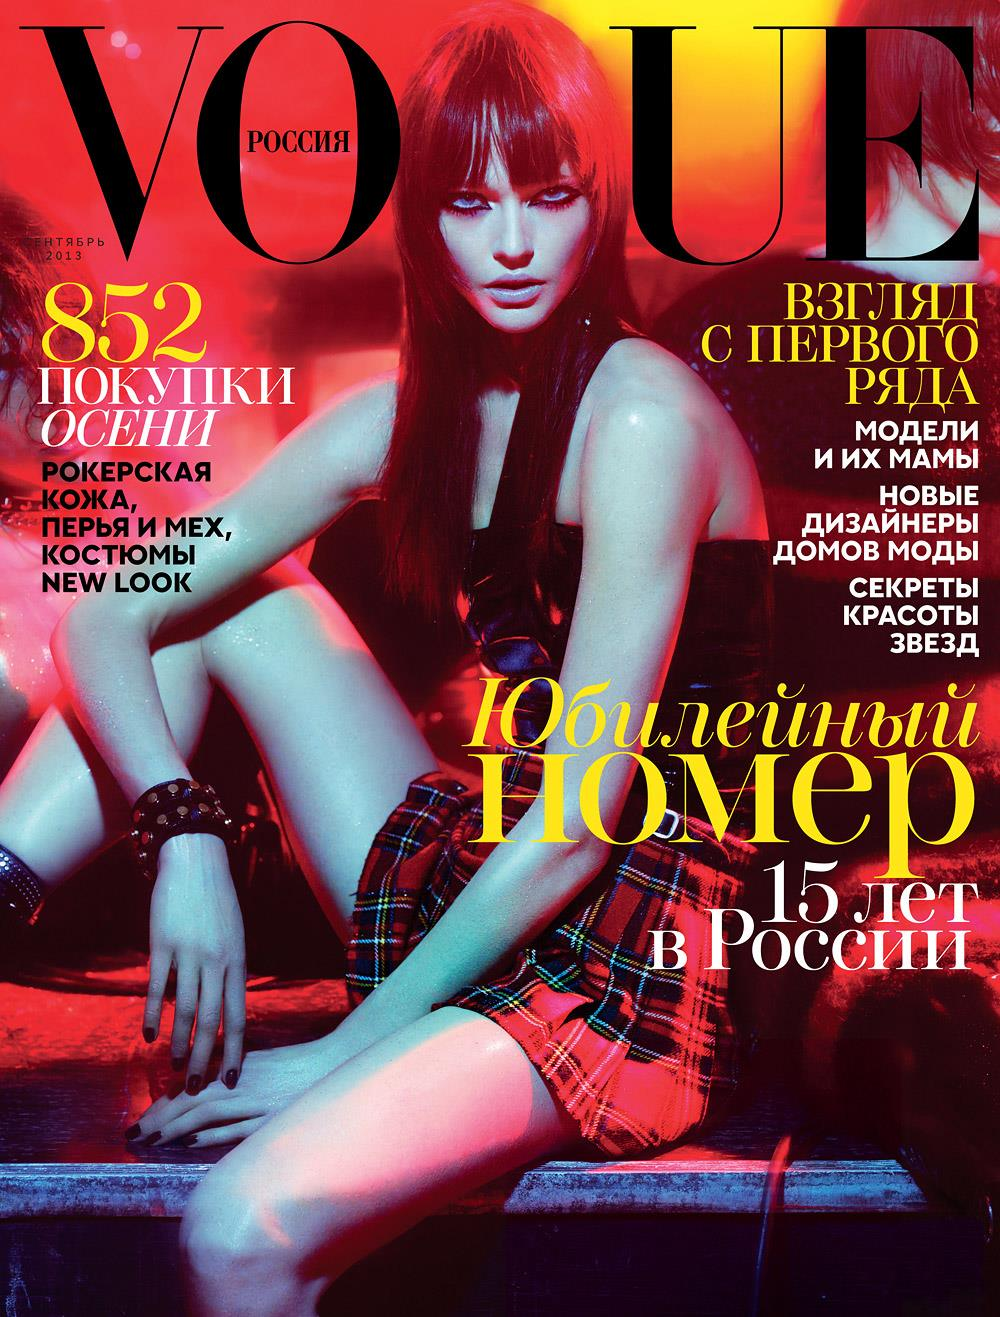 vogue-mert-marcus-sasha-cover